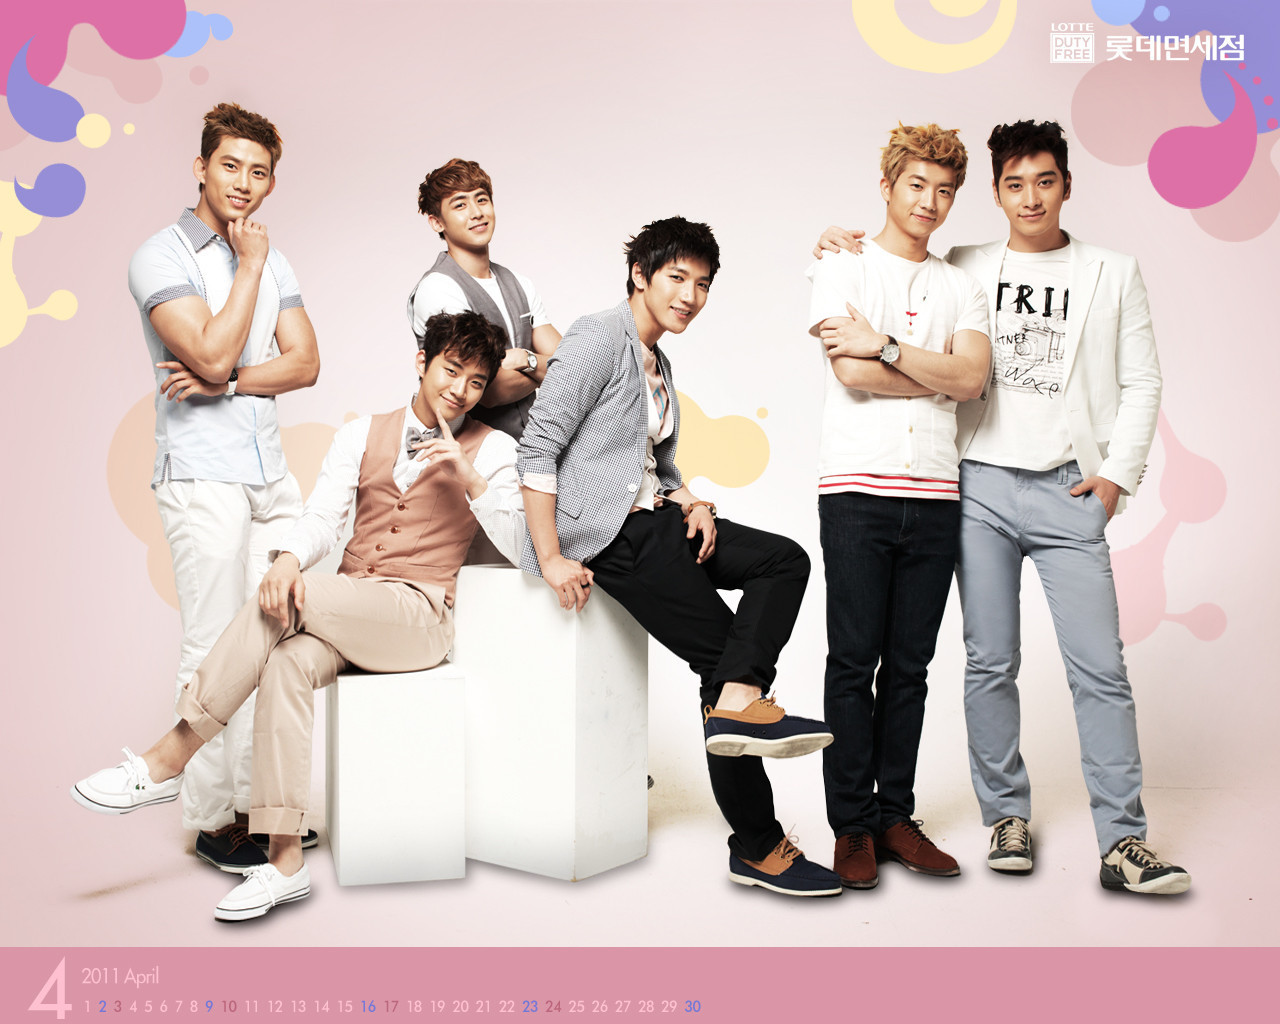 2pm images 2PM Lotte Dutte Free April HD wallpaper and background